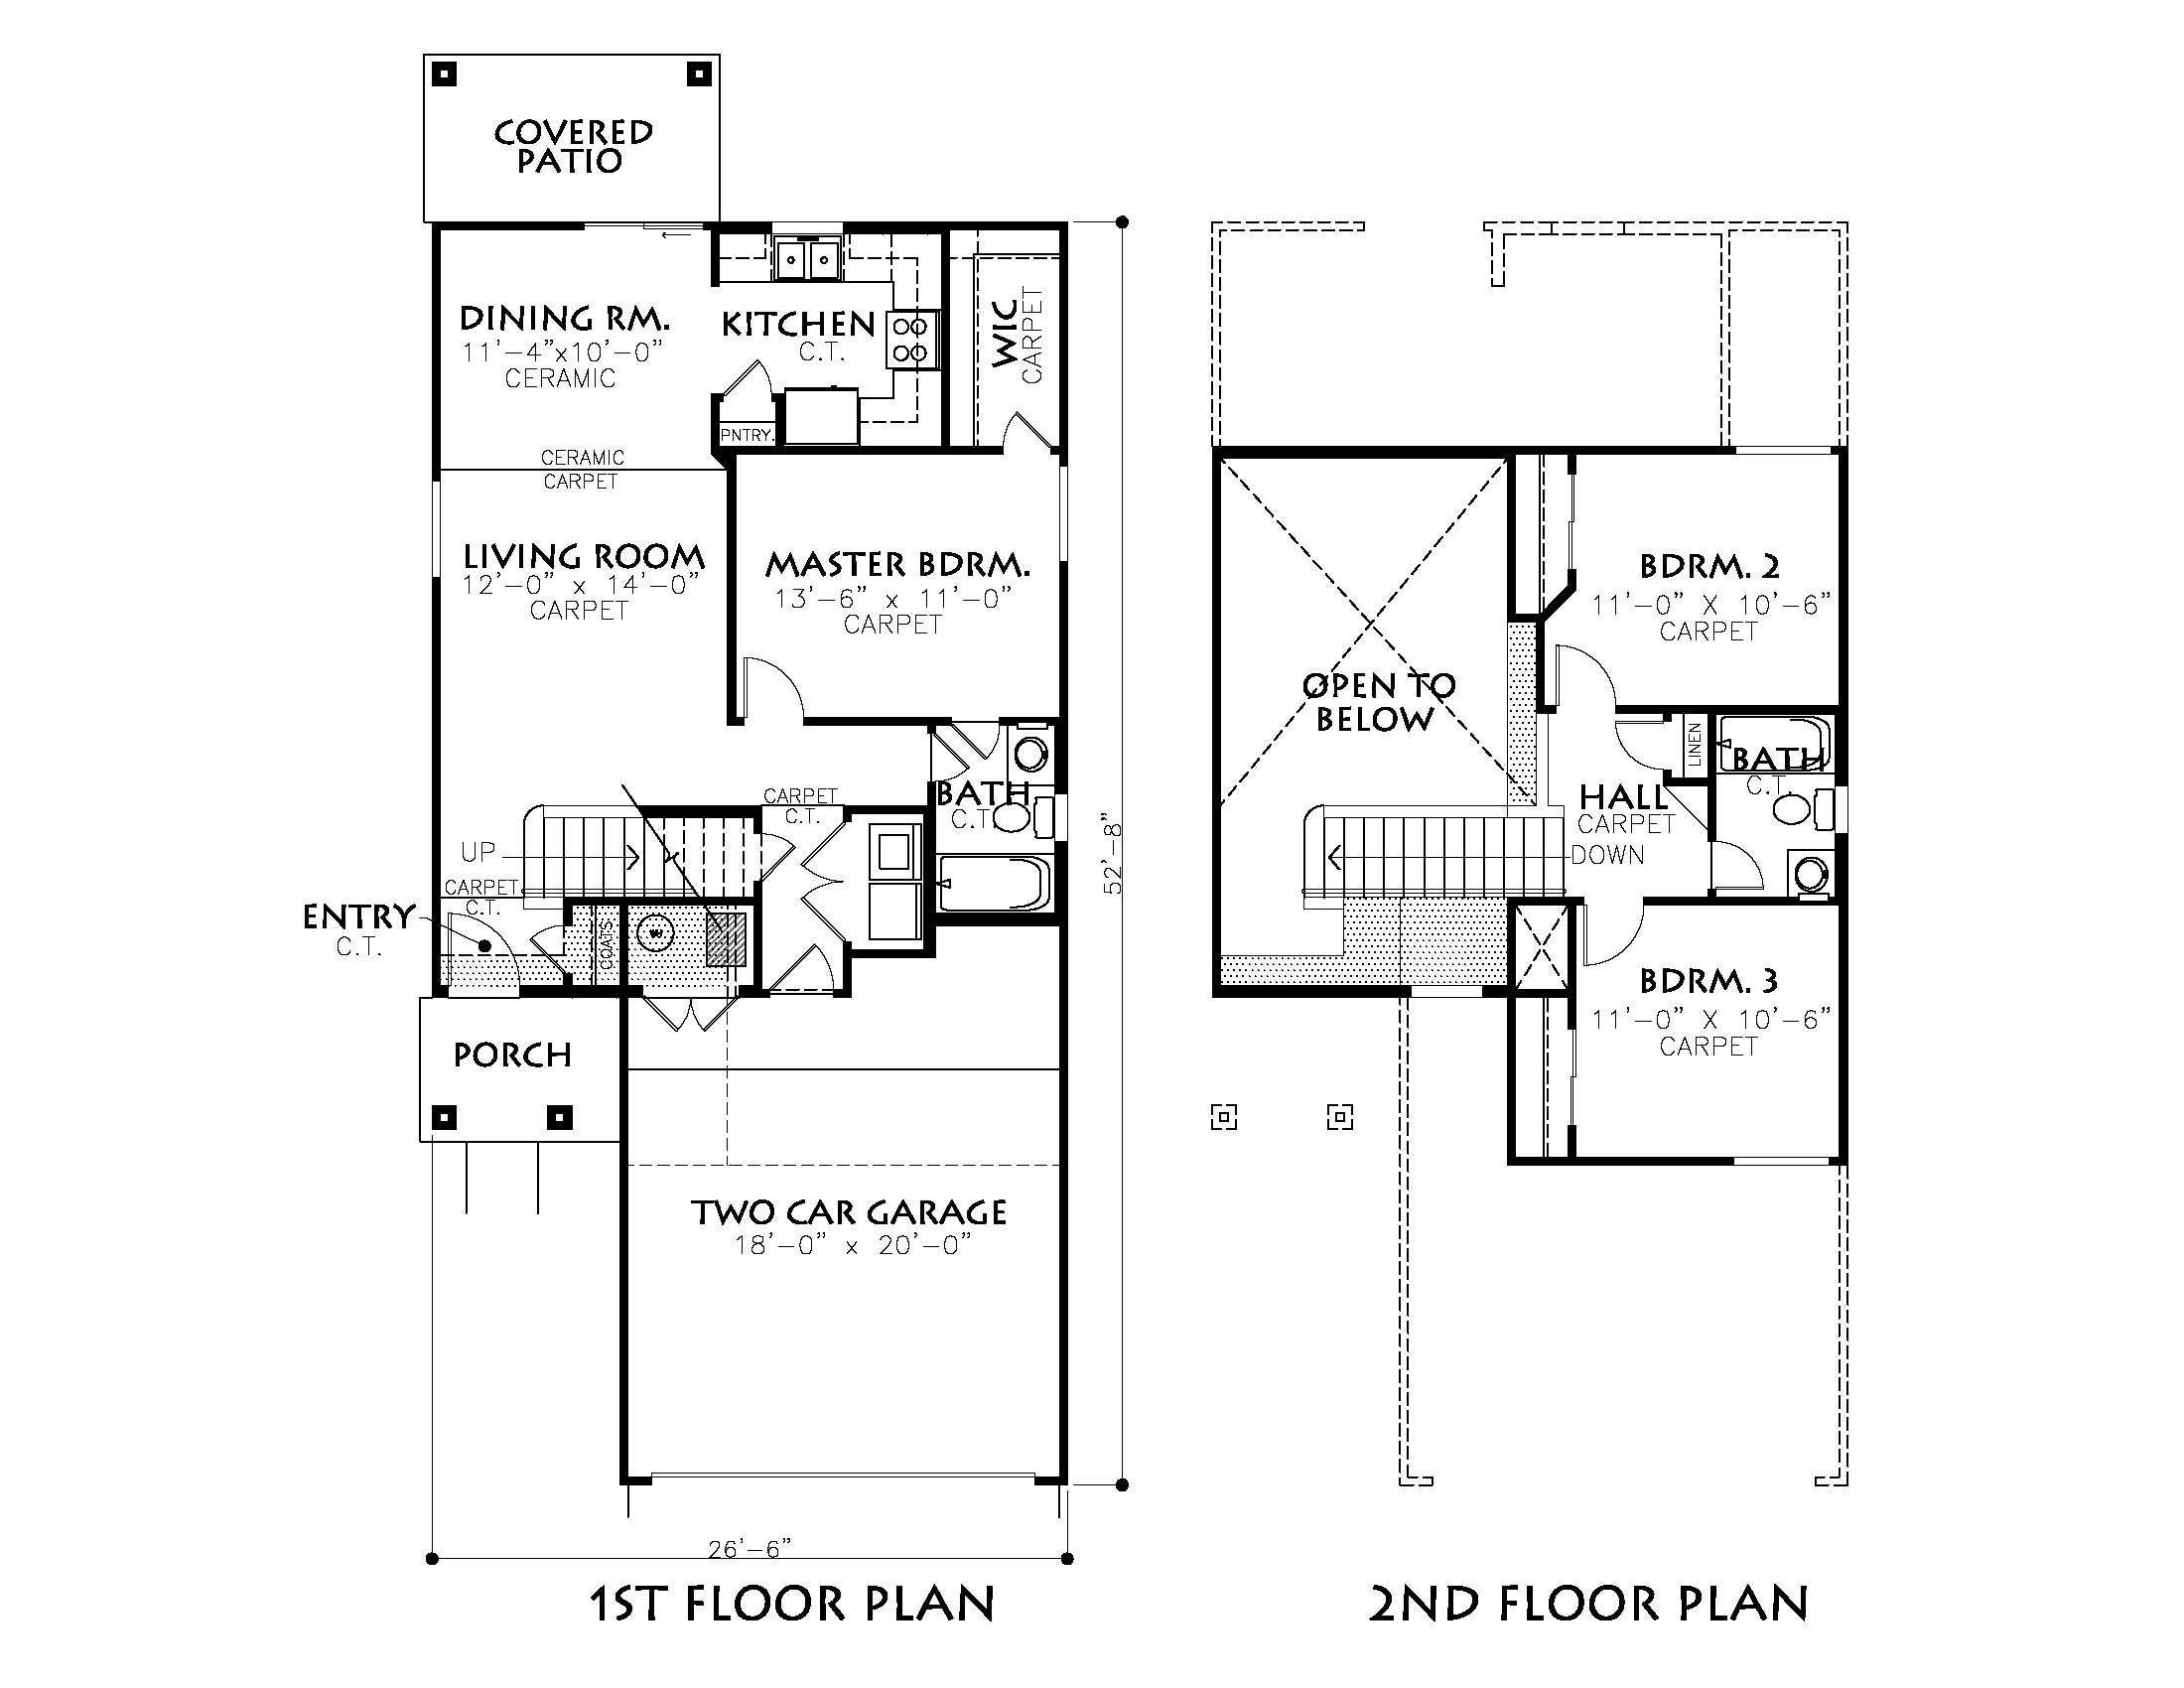 Awesome Floor Plan Image Idea